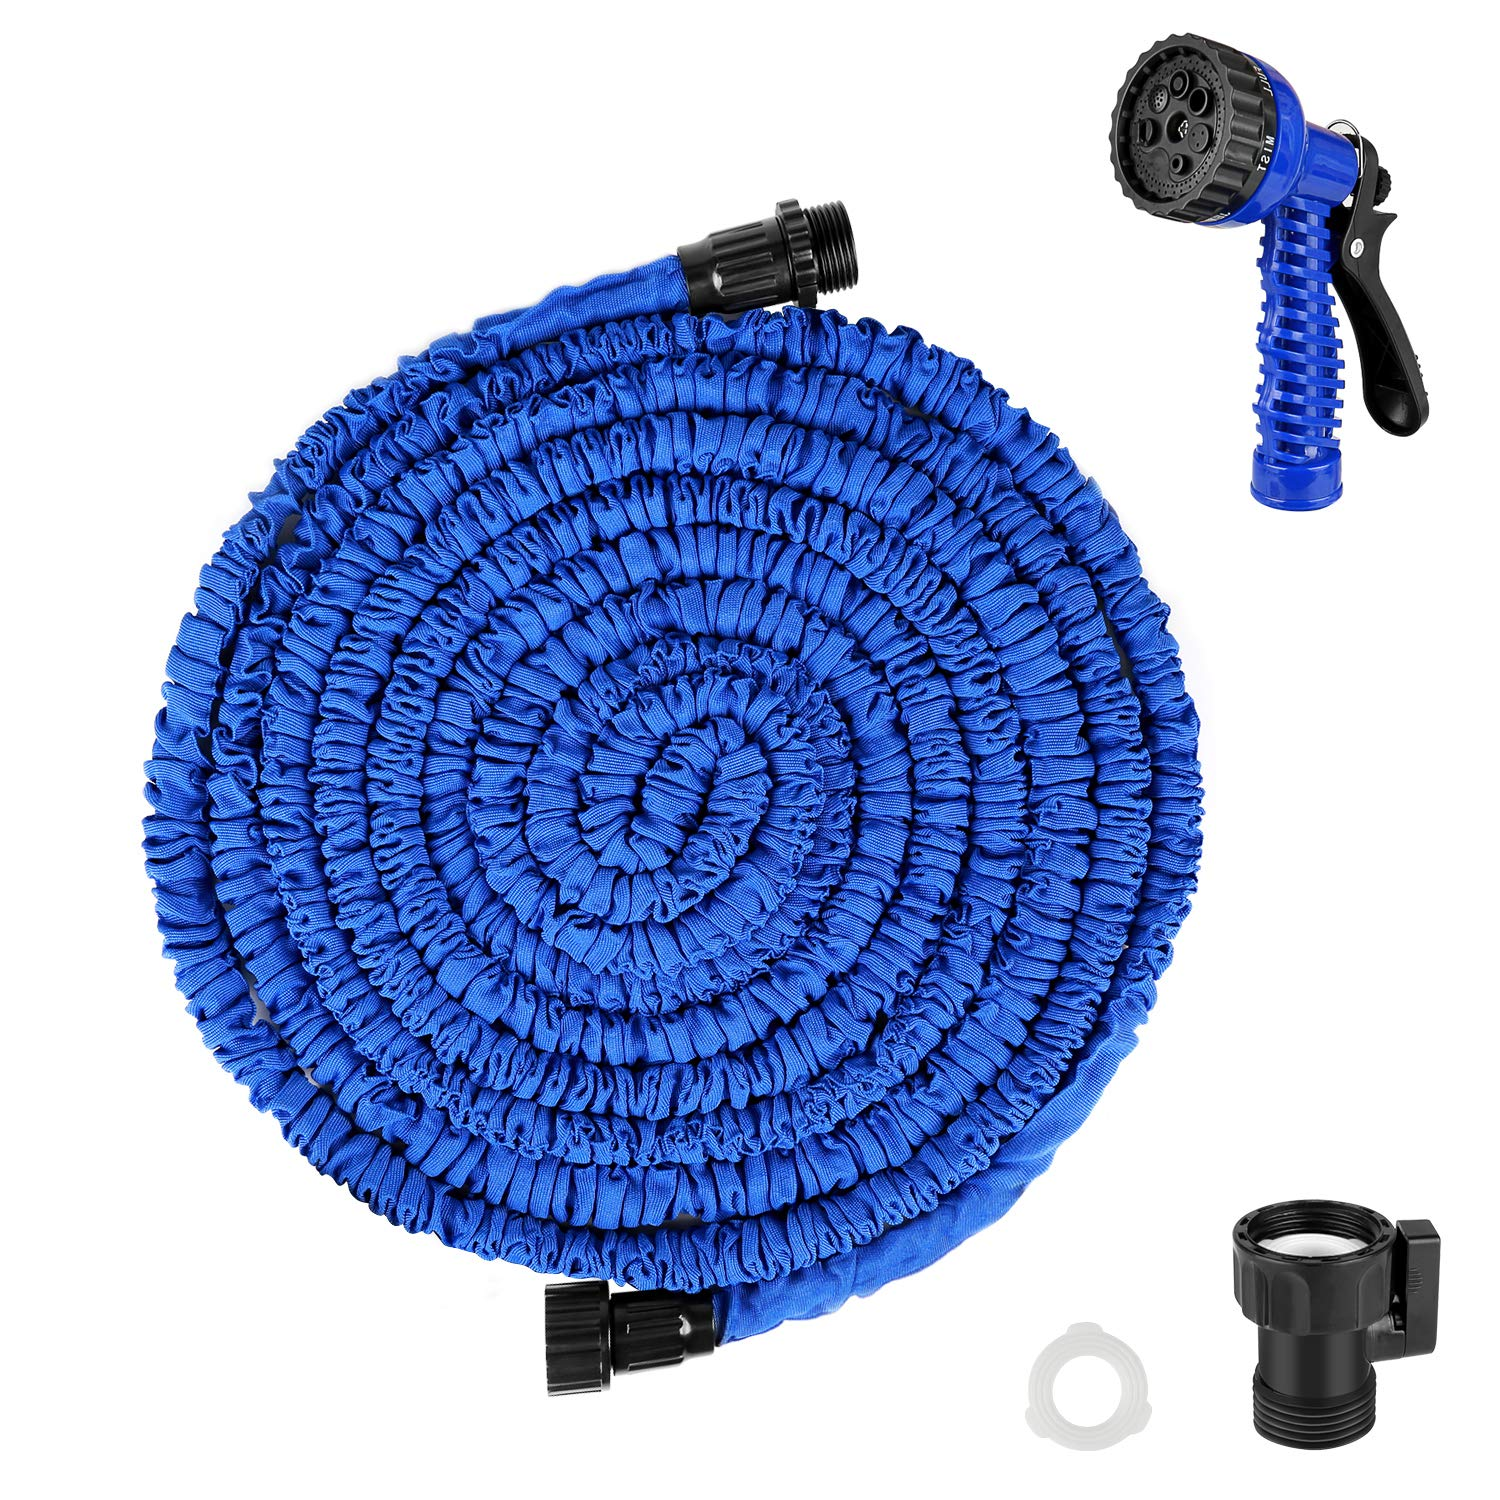 IEKA Expandable Garden Hose, 50FT Lightweight Flexible Expanding Pressure Water Garden Hose Kit Satisfy for All Watering Needs